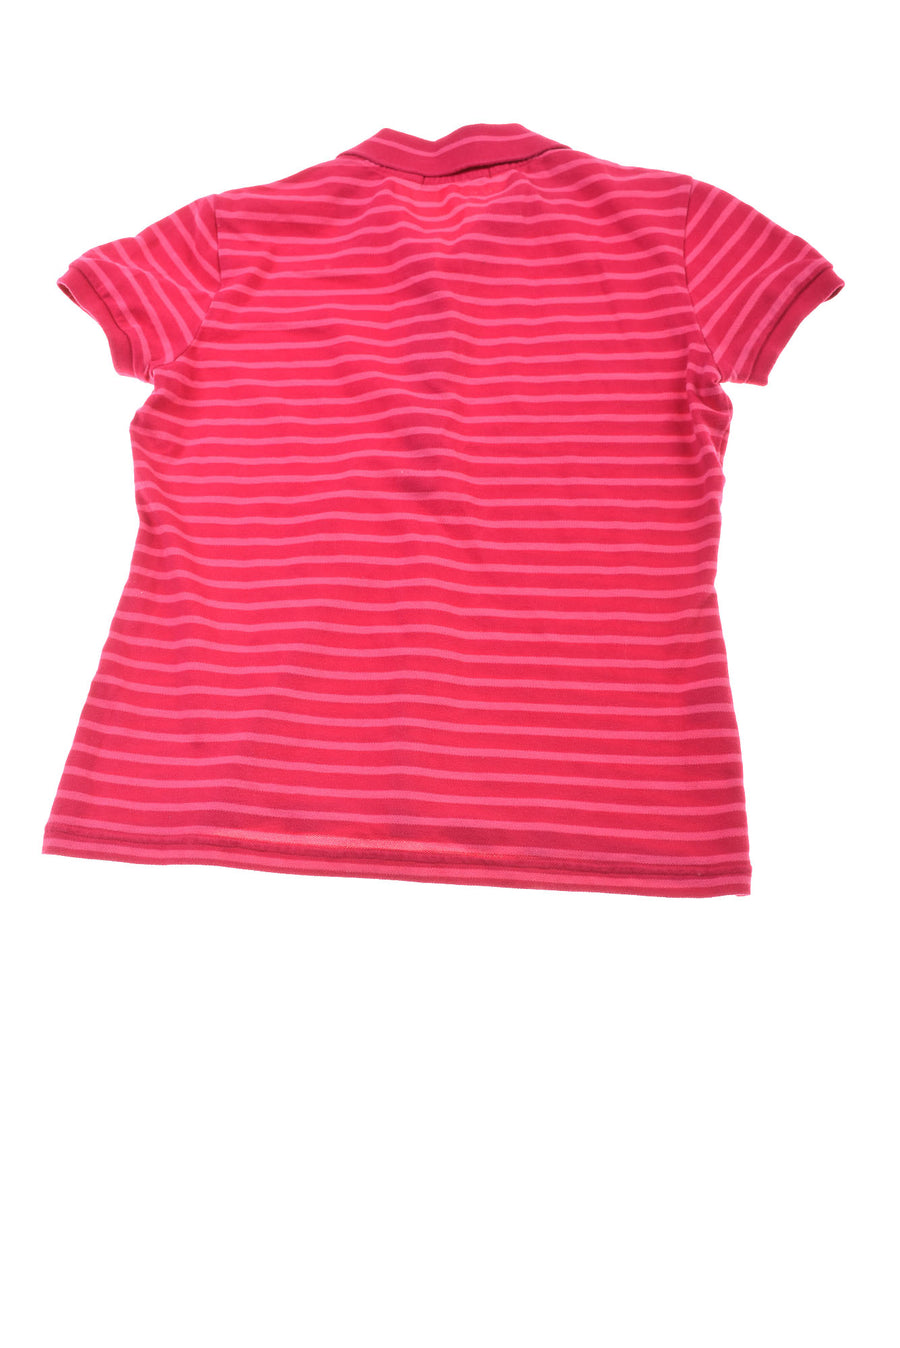 USED Lacoste Women's Top 36 Pink